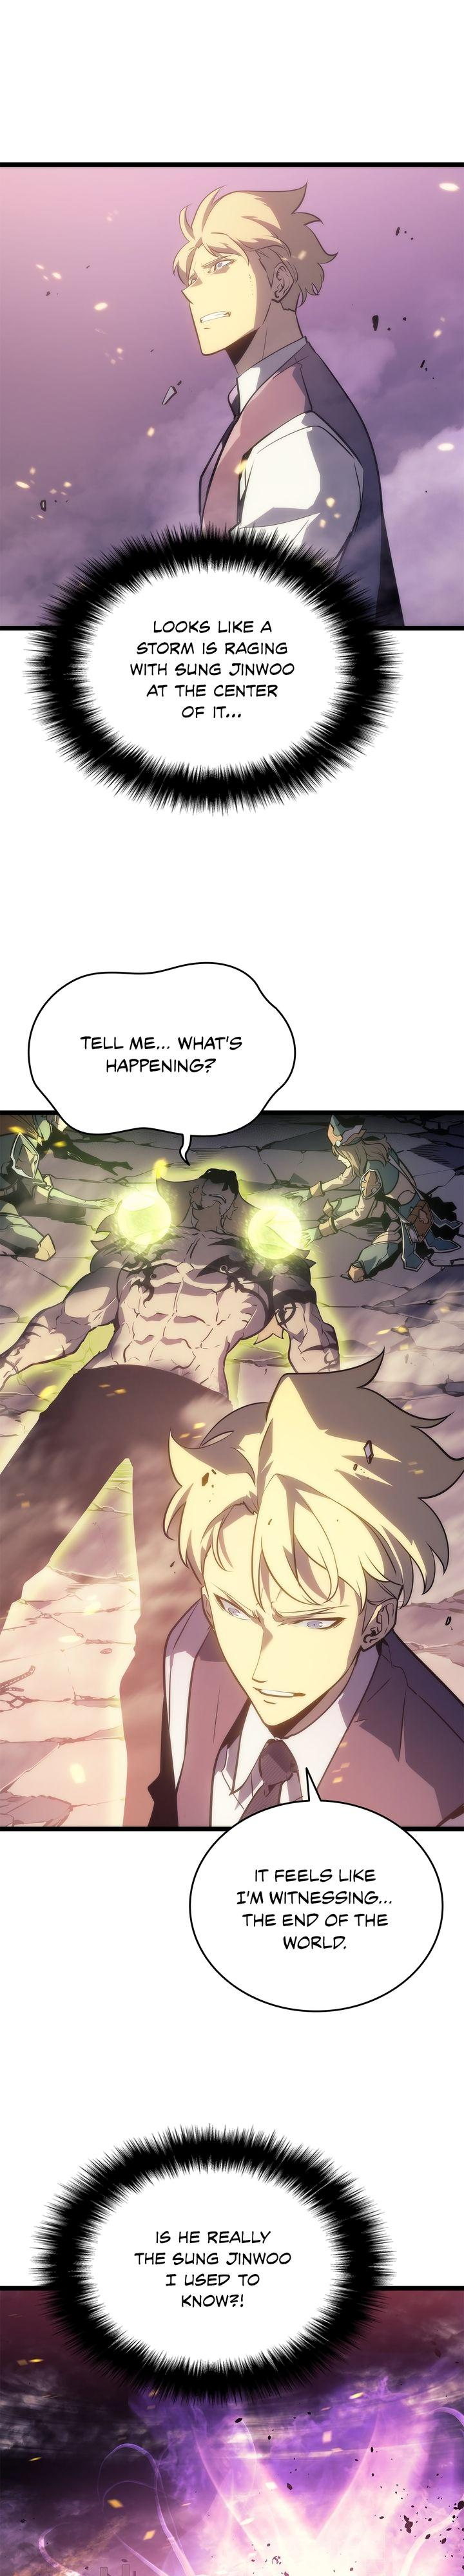 Solo Leveling Chapter 160 Page 3